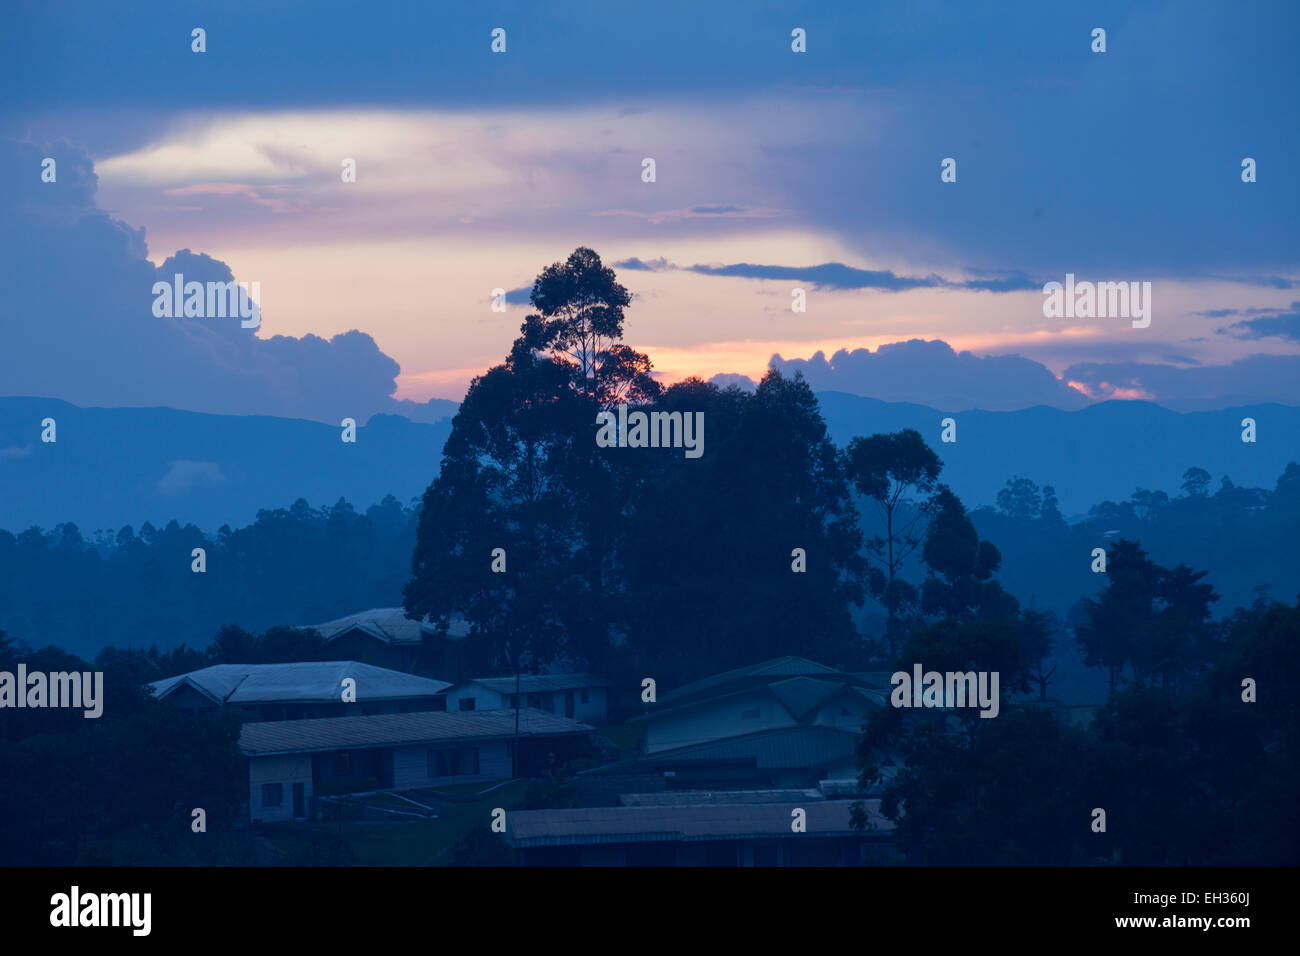 Bamenda, Cameroon, July 2013: Sunset during the rainy season. - Stock Image